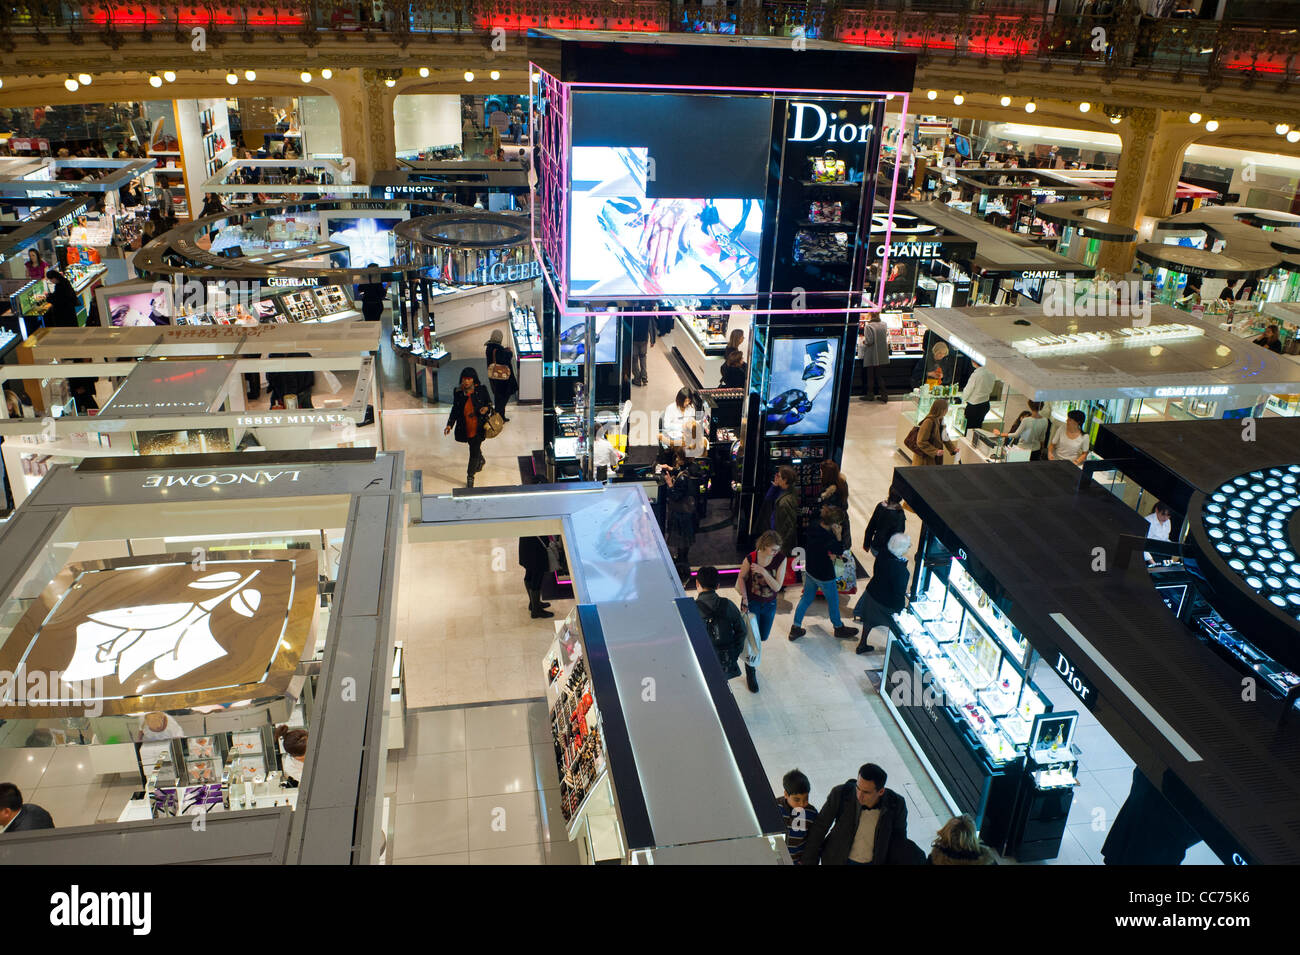 paris france shopping crowd inside galeries lafayette department stock photo 41954730 alamy. Black Bedroom Furniture Sets. Home Design Ideas